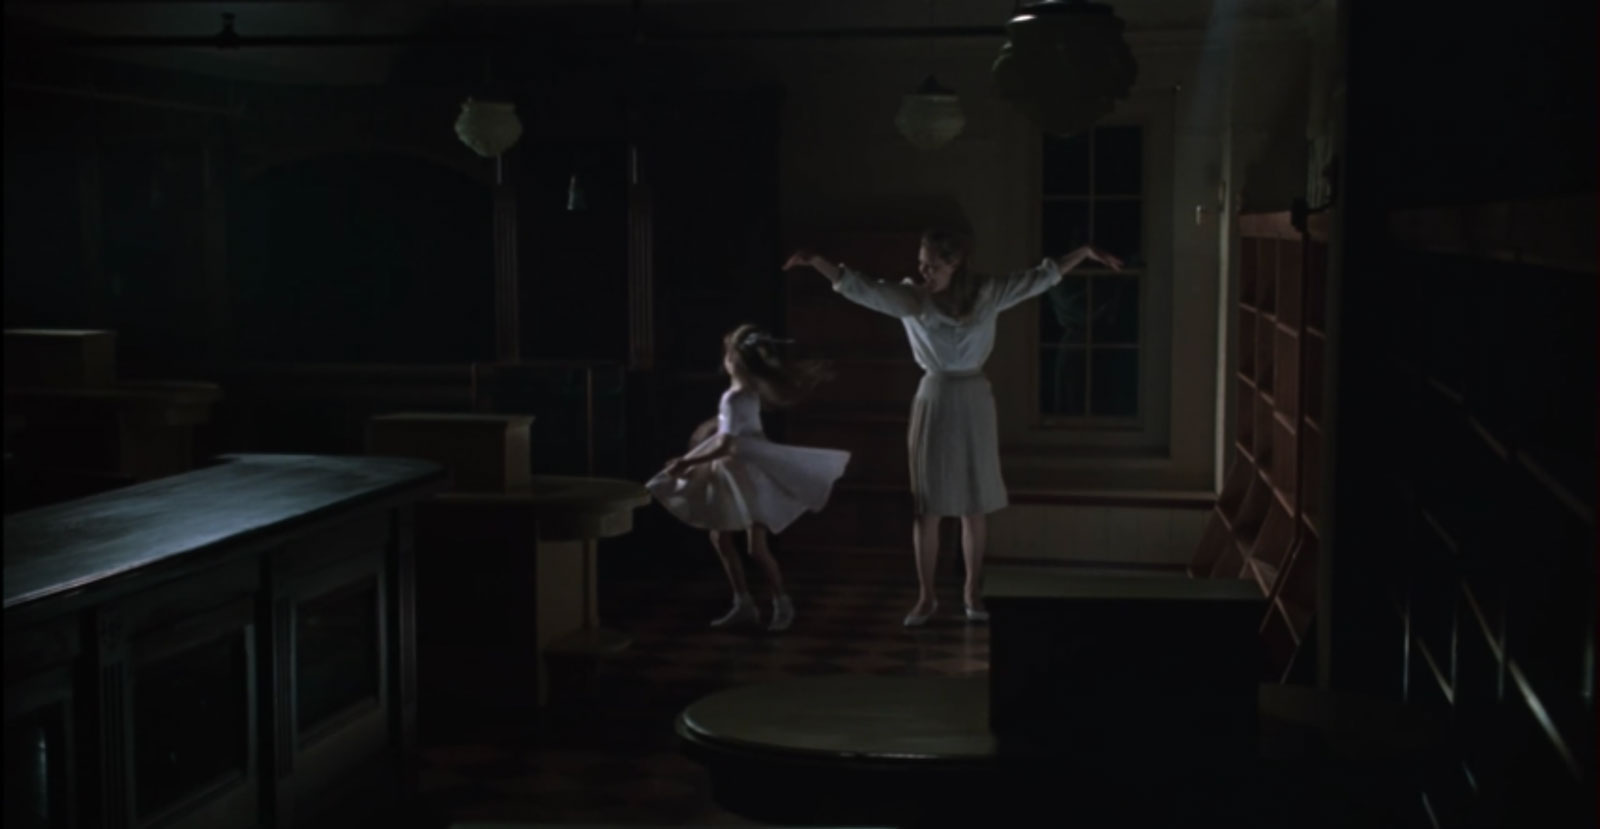 The memory of Kathleen's mother (Kathryn Meisle) and young Kathleen appears. We see them dance together.